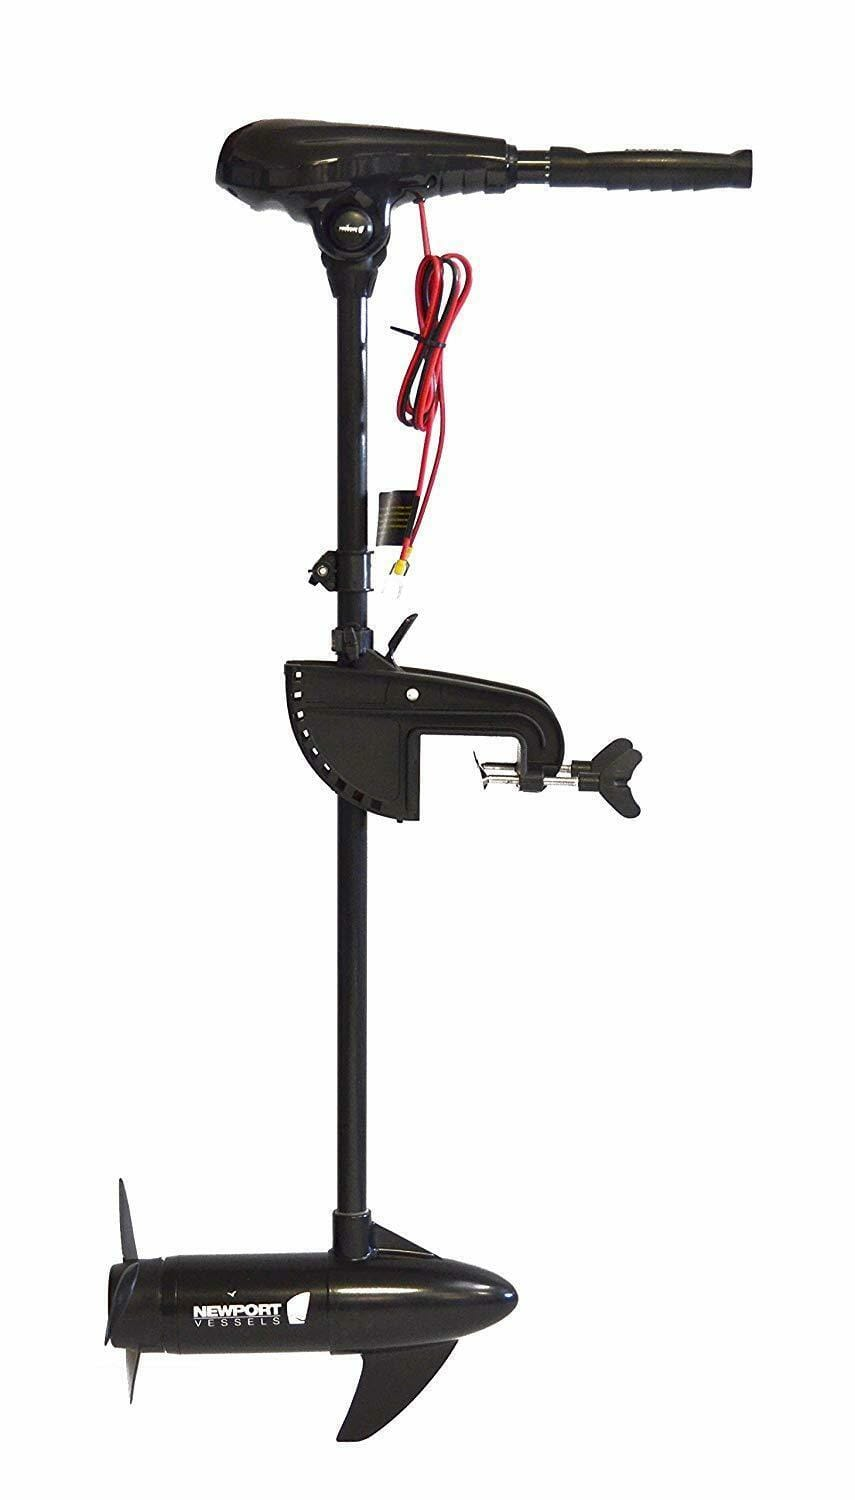 Newport Vessels X-Series 55lb Thrust Transom Mounted Saltwater Electric Trolling Motor